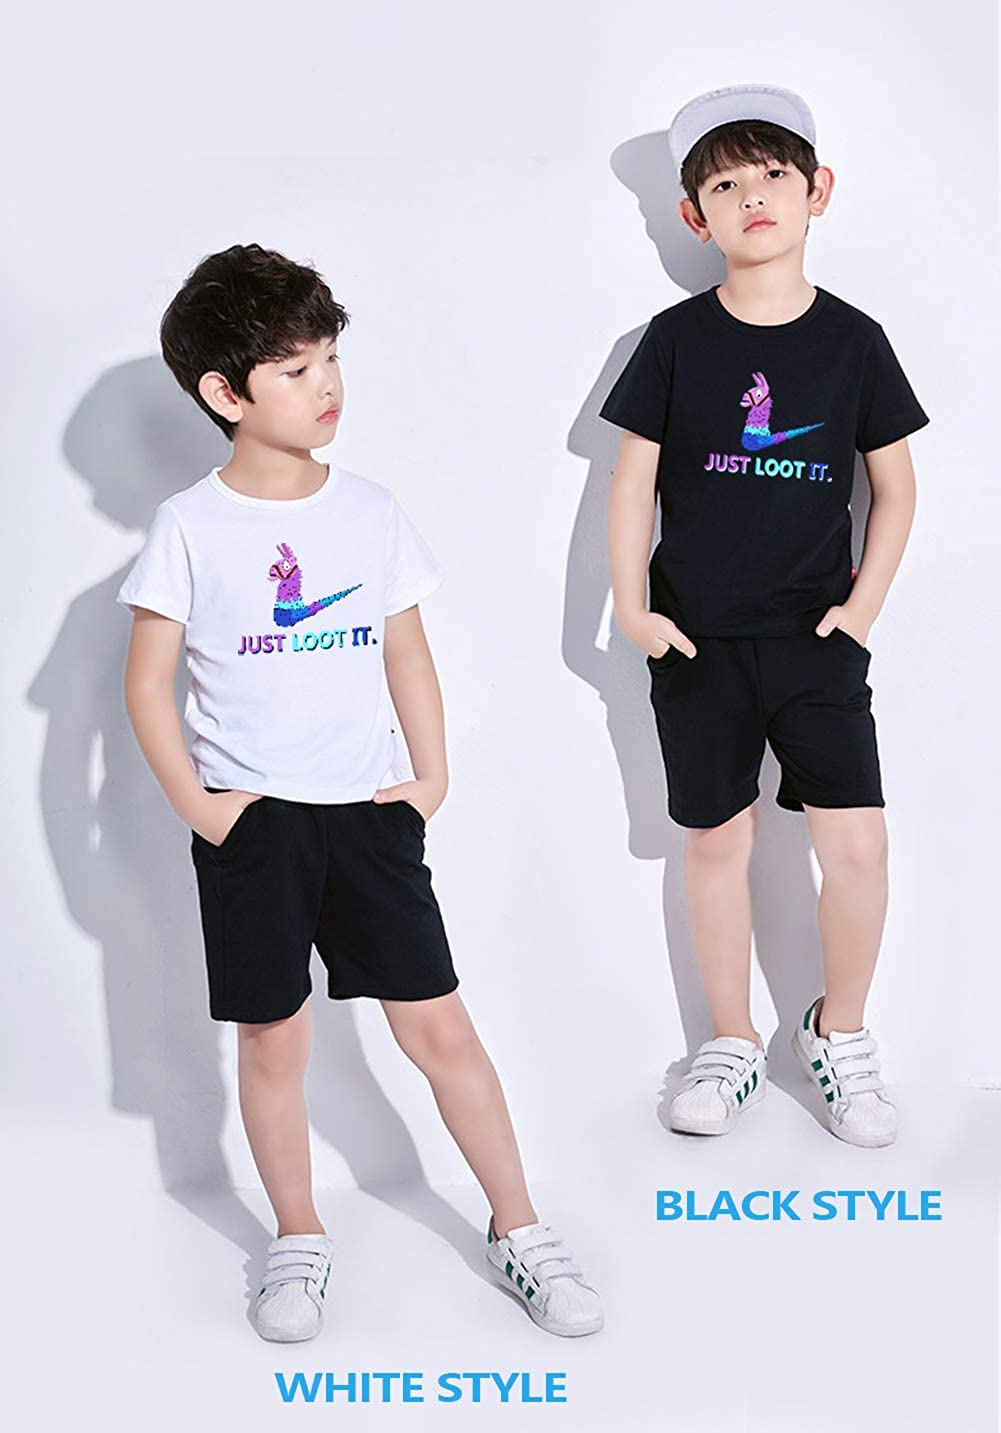 Columbia River Trading Just Loot It T-Shirt Loose Fit Short Sleeve Tee Llama for Youth Teen Gamers